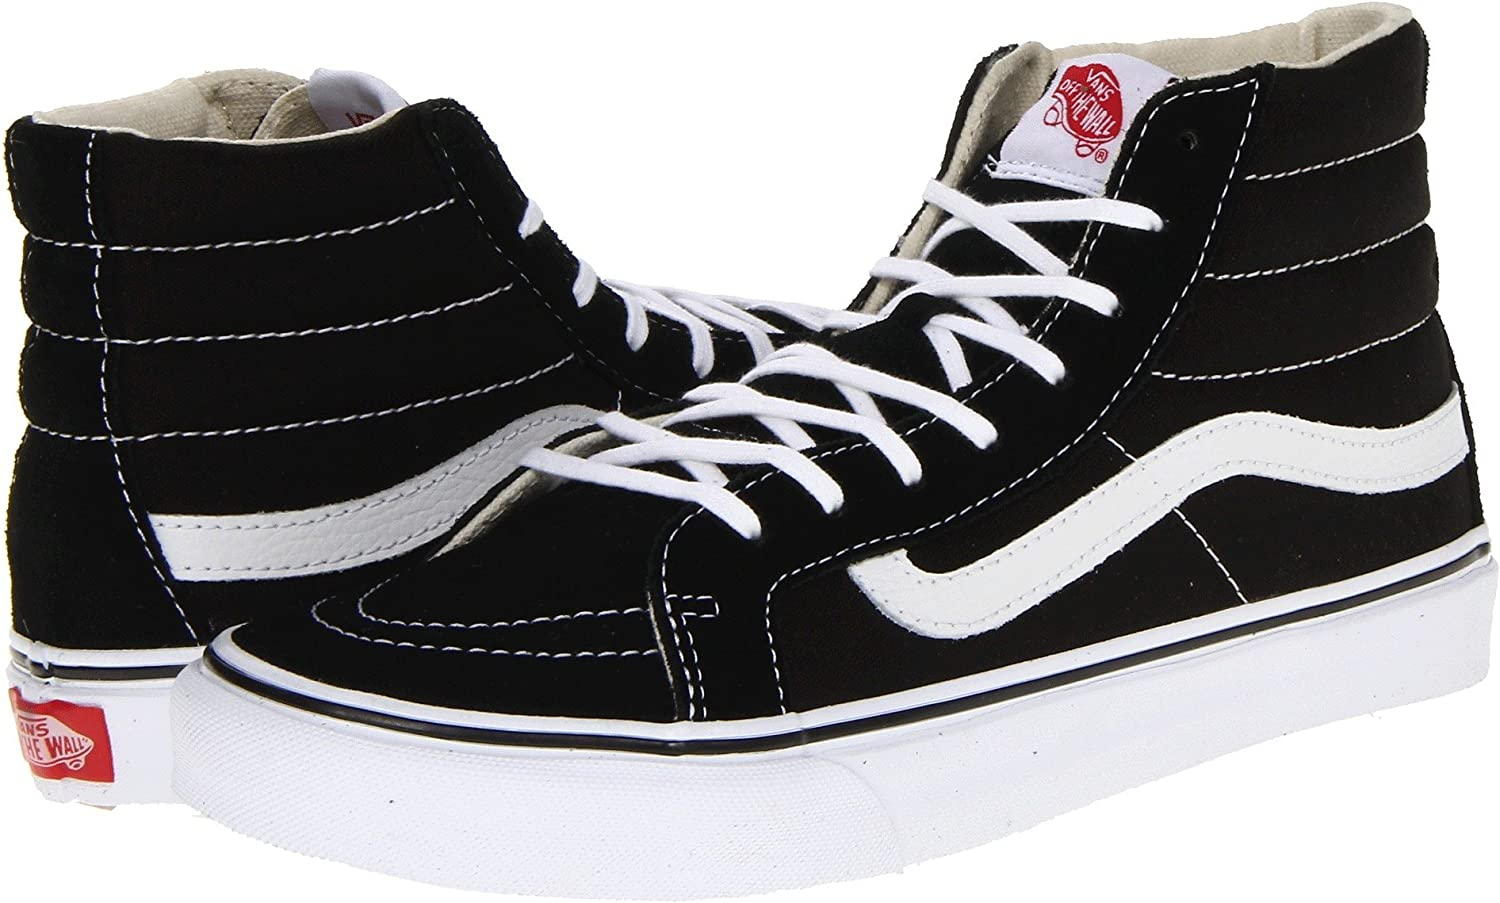 Vans Unisex Adults Sk8-hi Reissue Leather Trainers